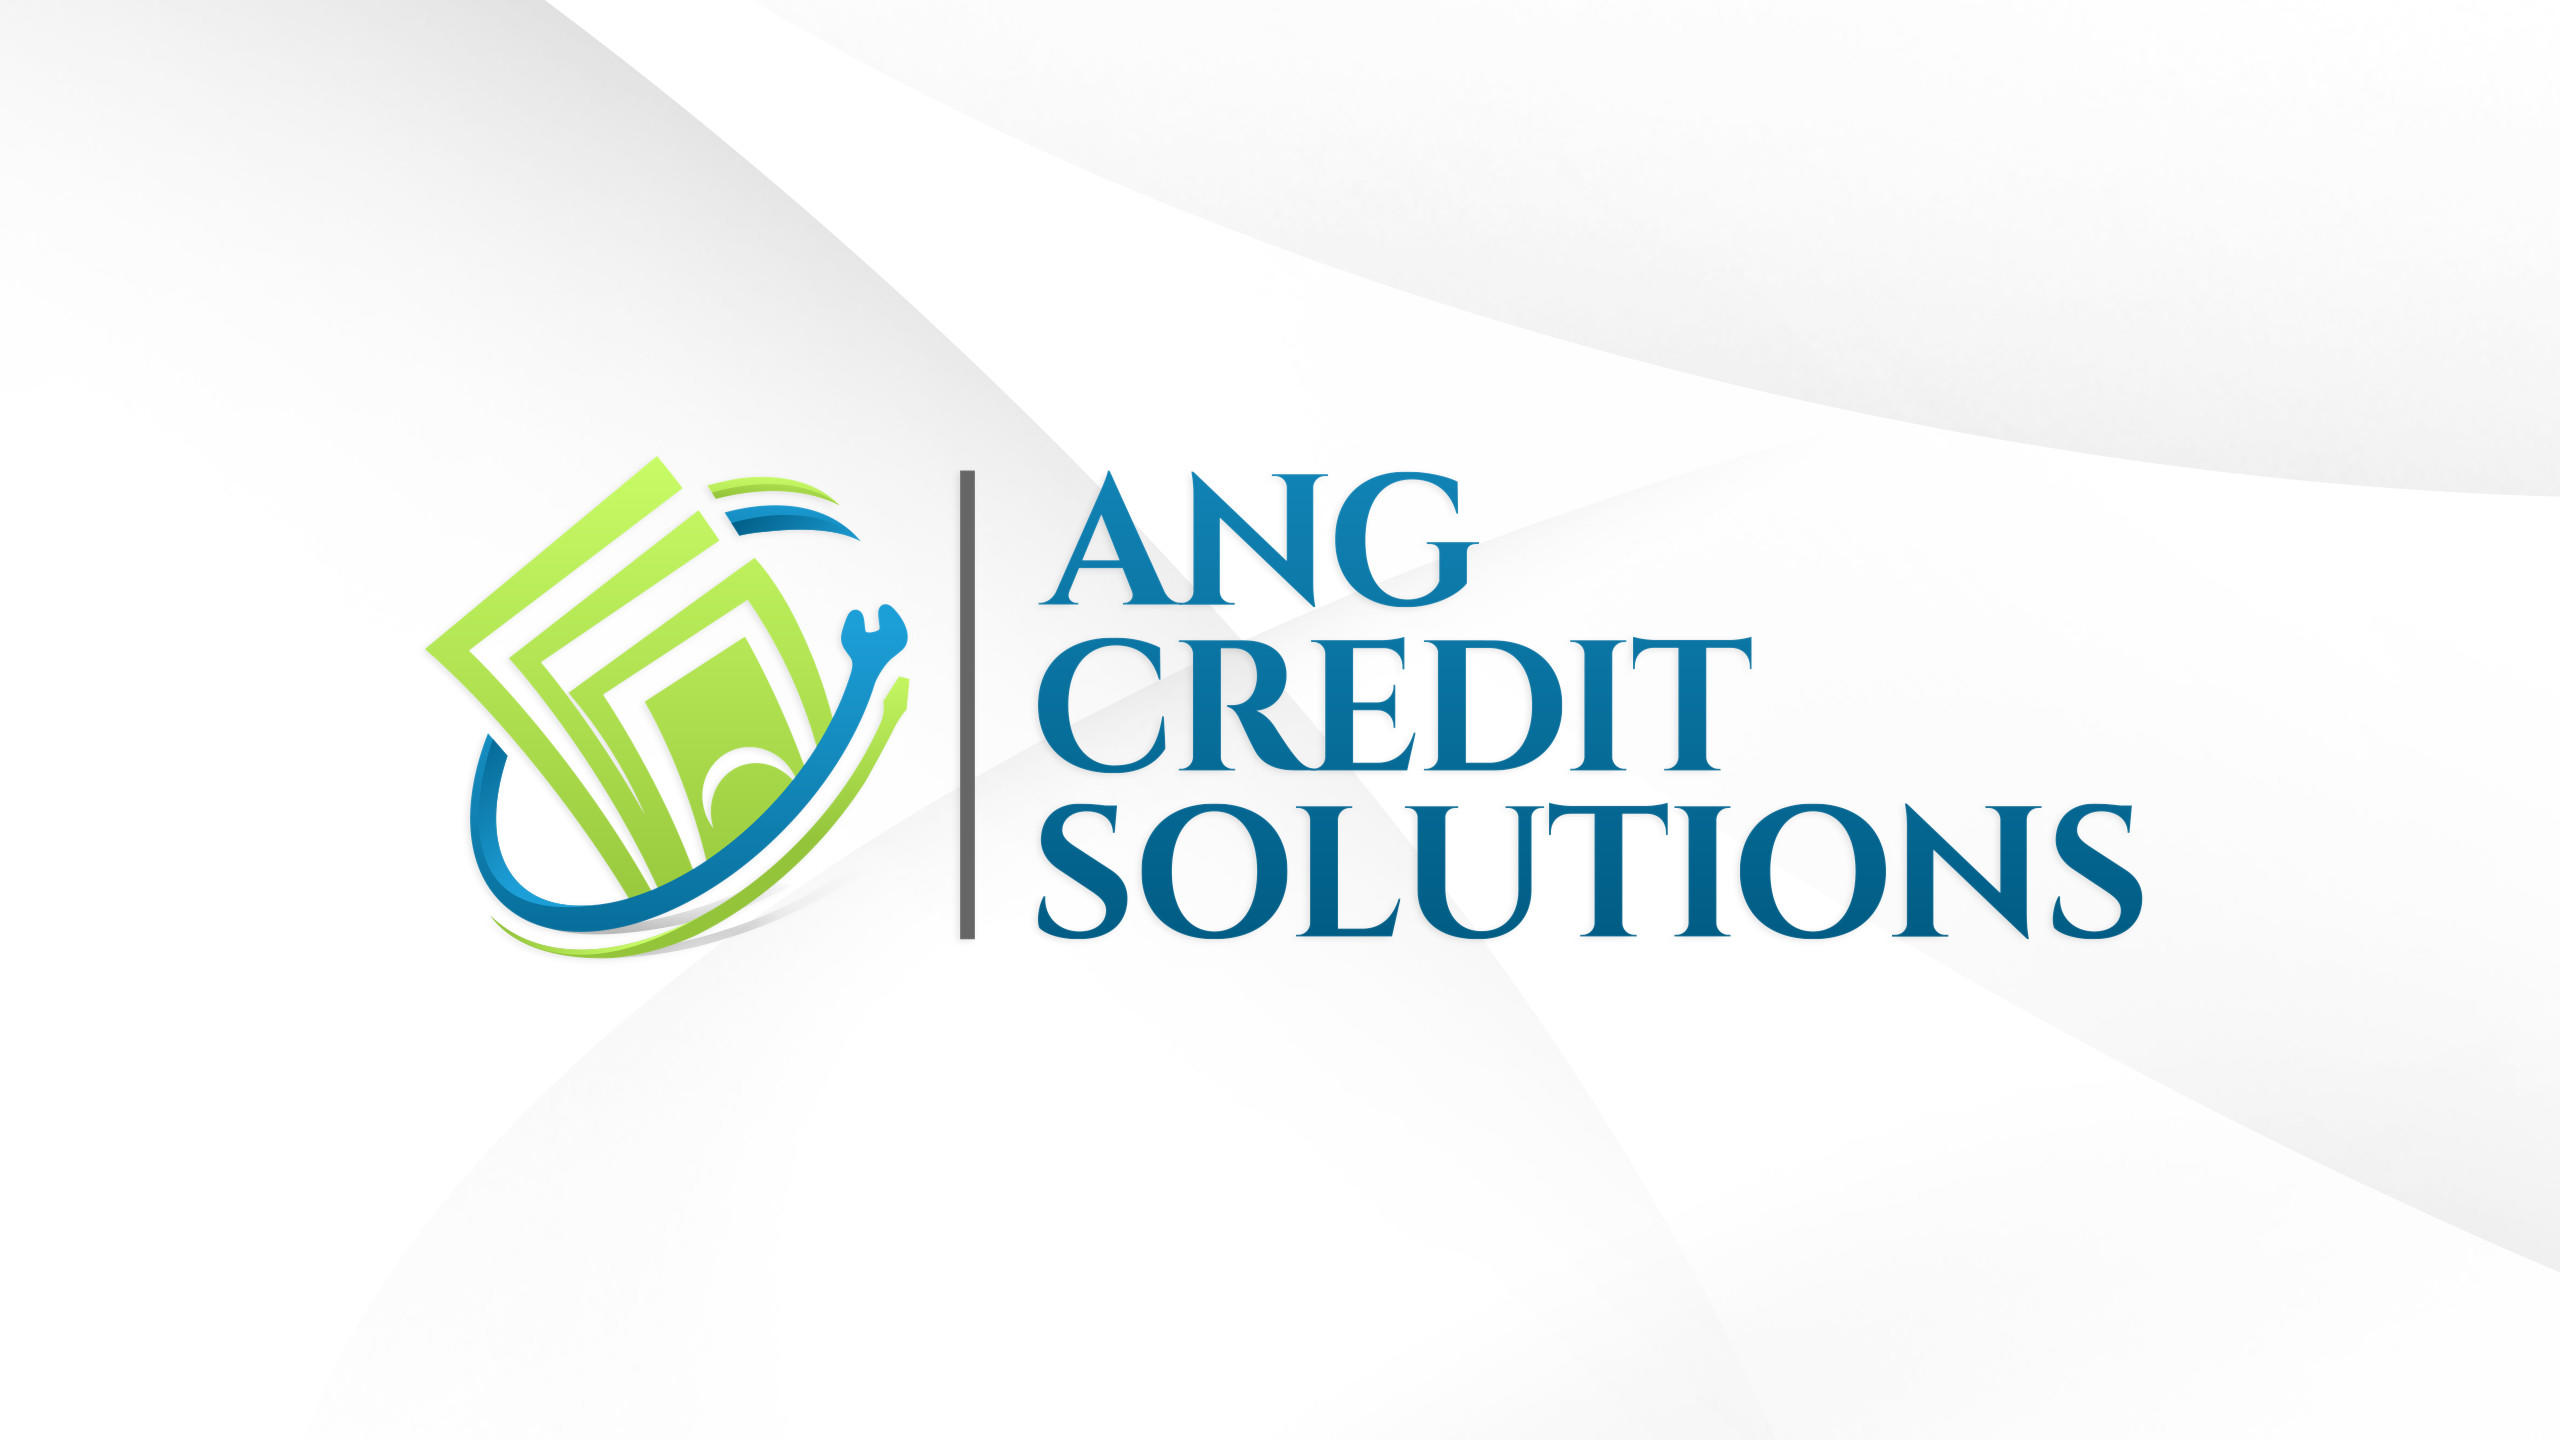 ANG Credit Solutions - Credit Repair Services Company Houston